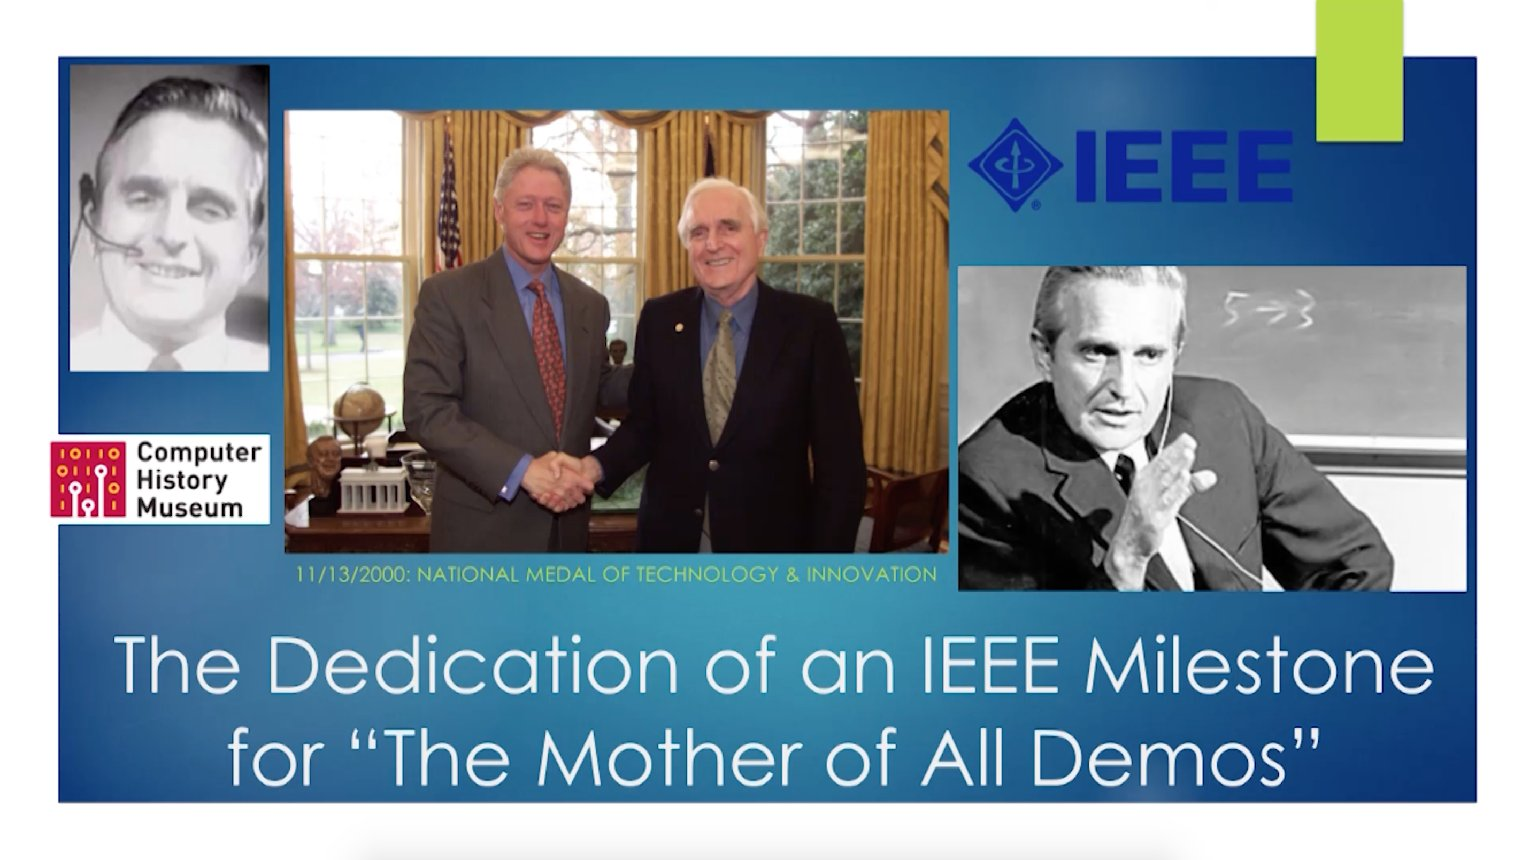 The Mother of All Demos: IEEE Engineering Milestone Event